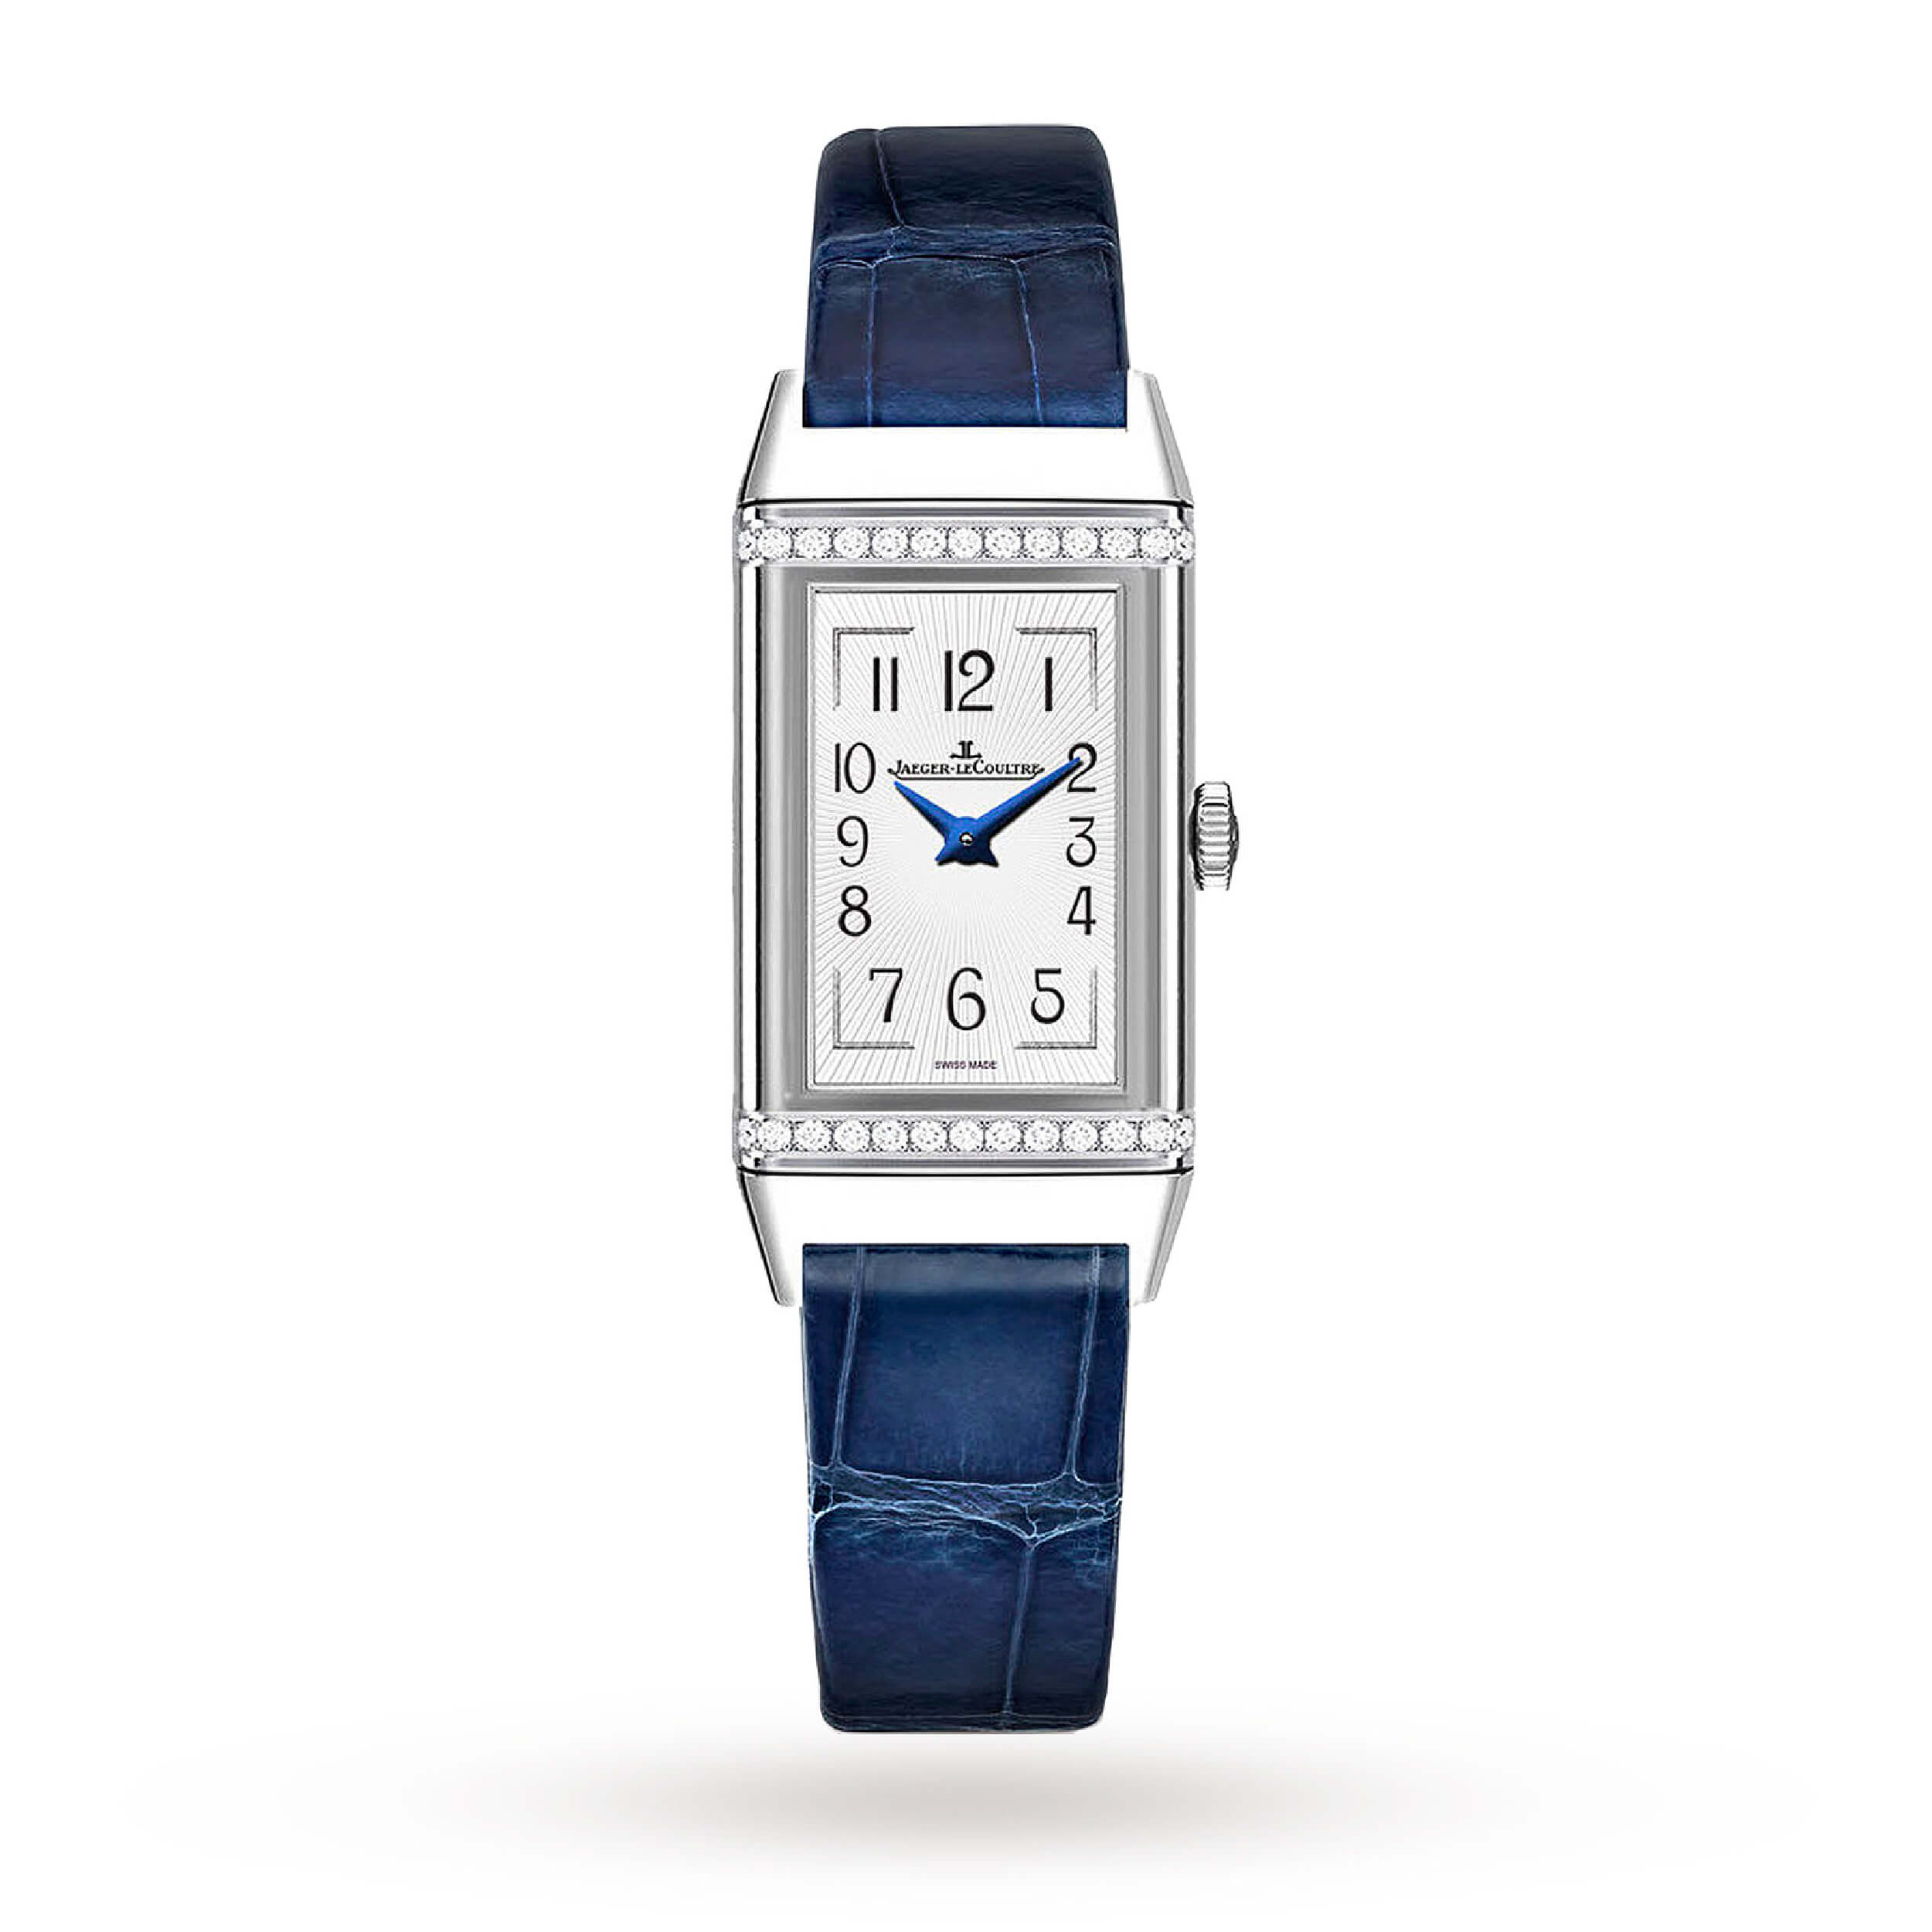 Jaeger-LeCoultre Reverso One | Wristwatches360